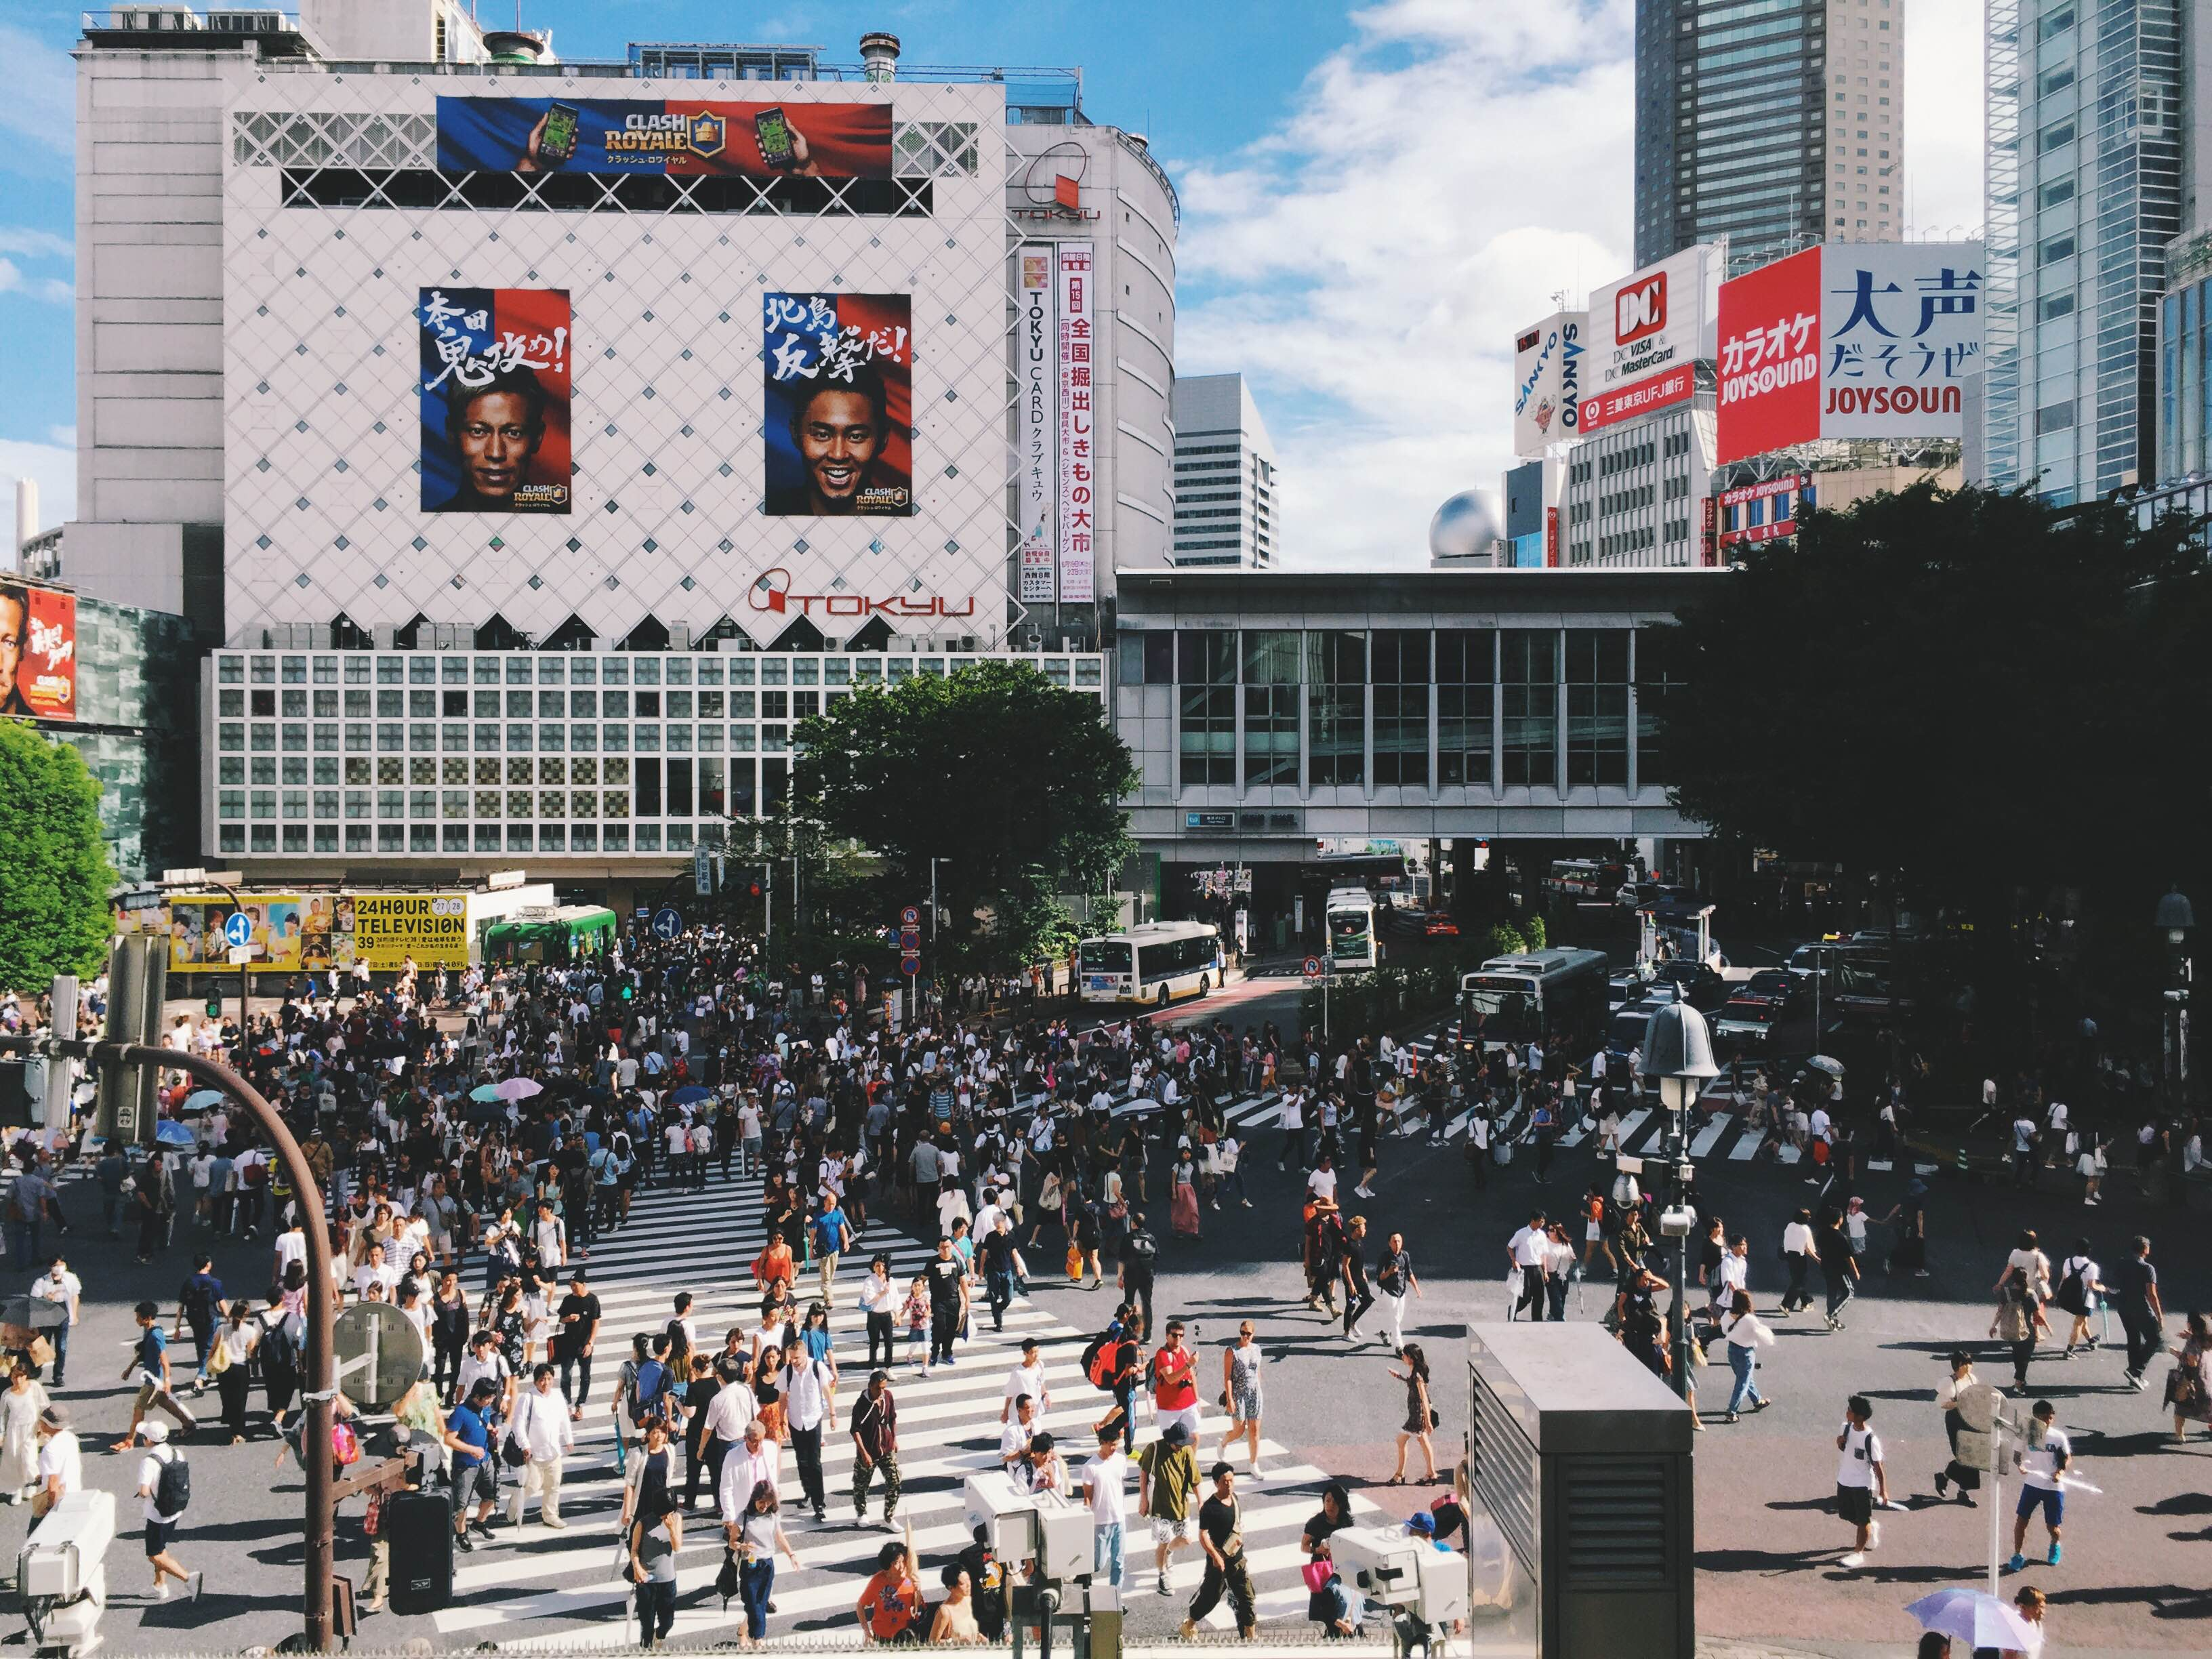 During rush hour, as many as 2,500 people use the Shibuya Crossing in Tokyo. Photo credit: Casey Tran